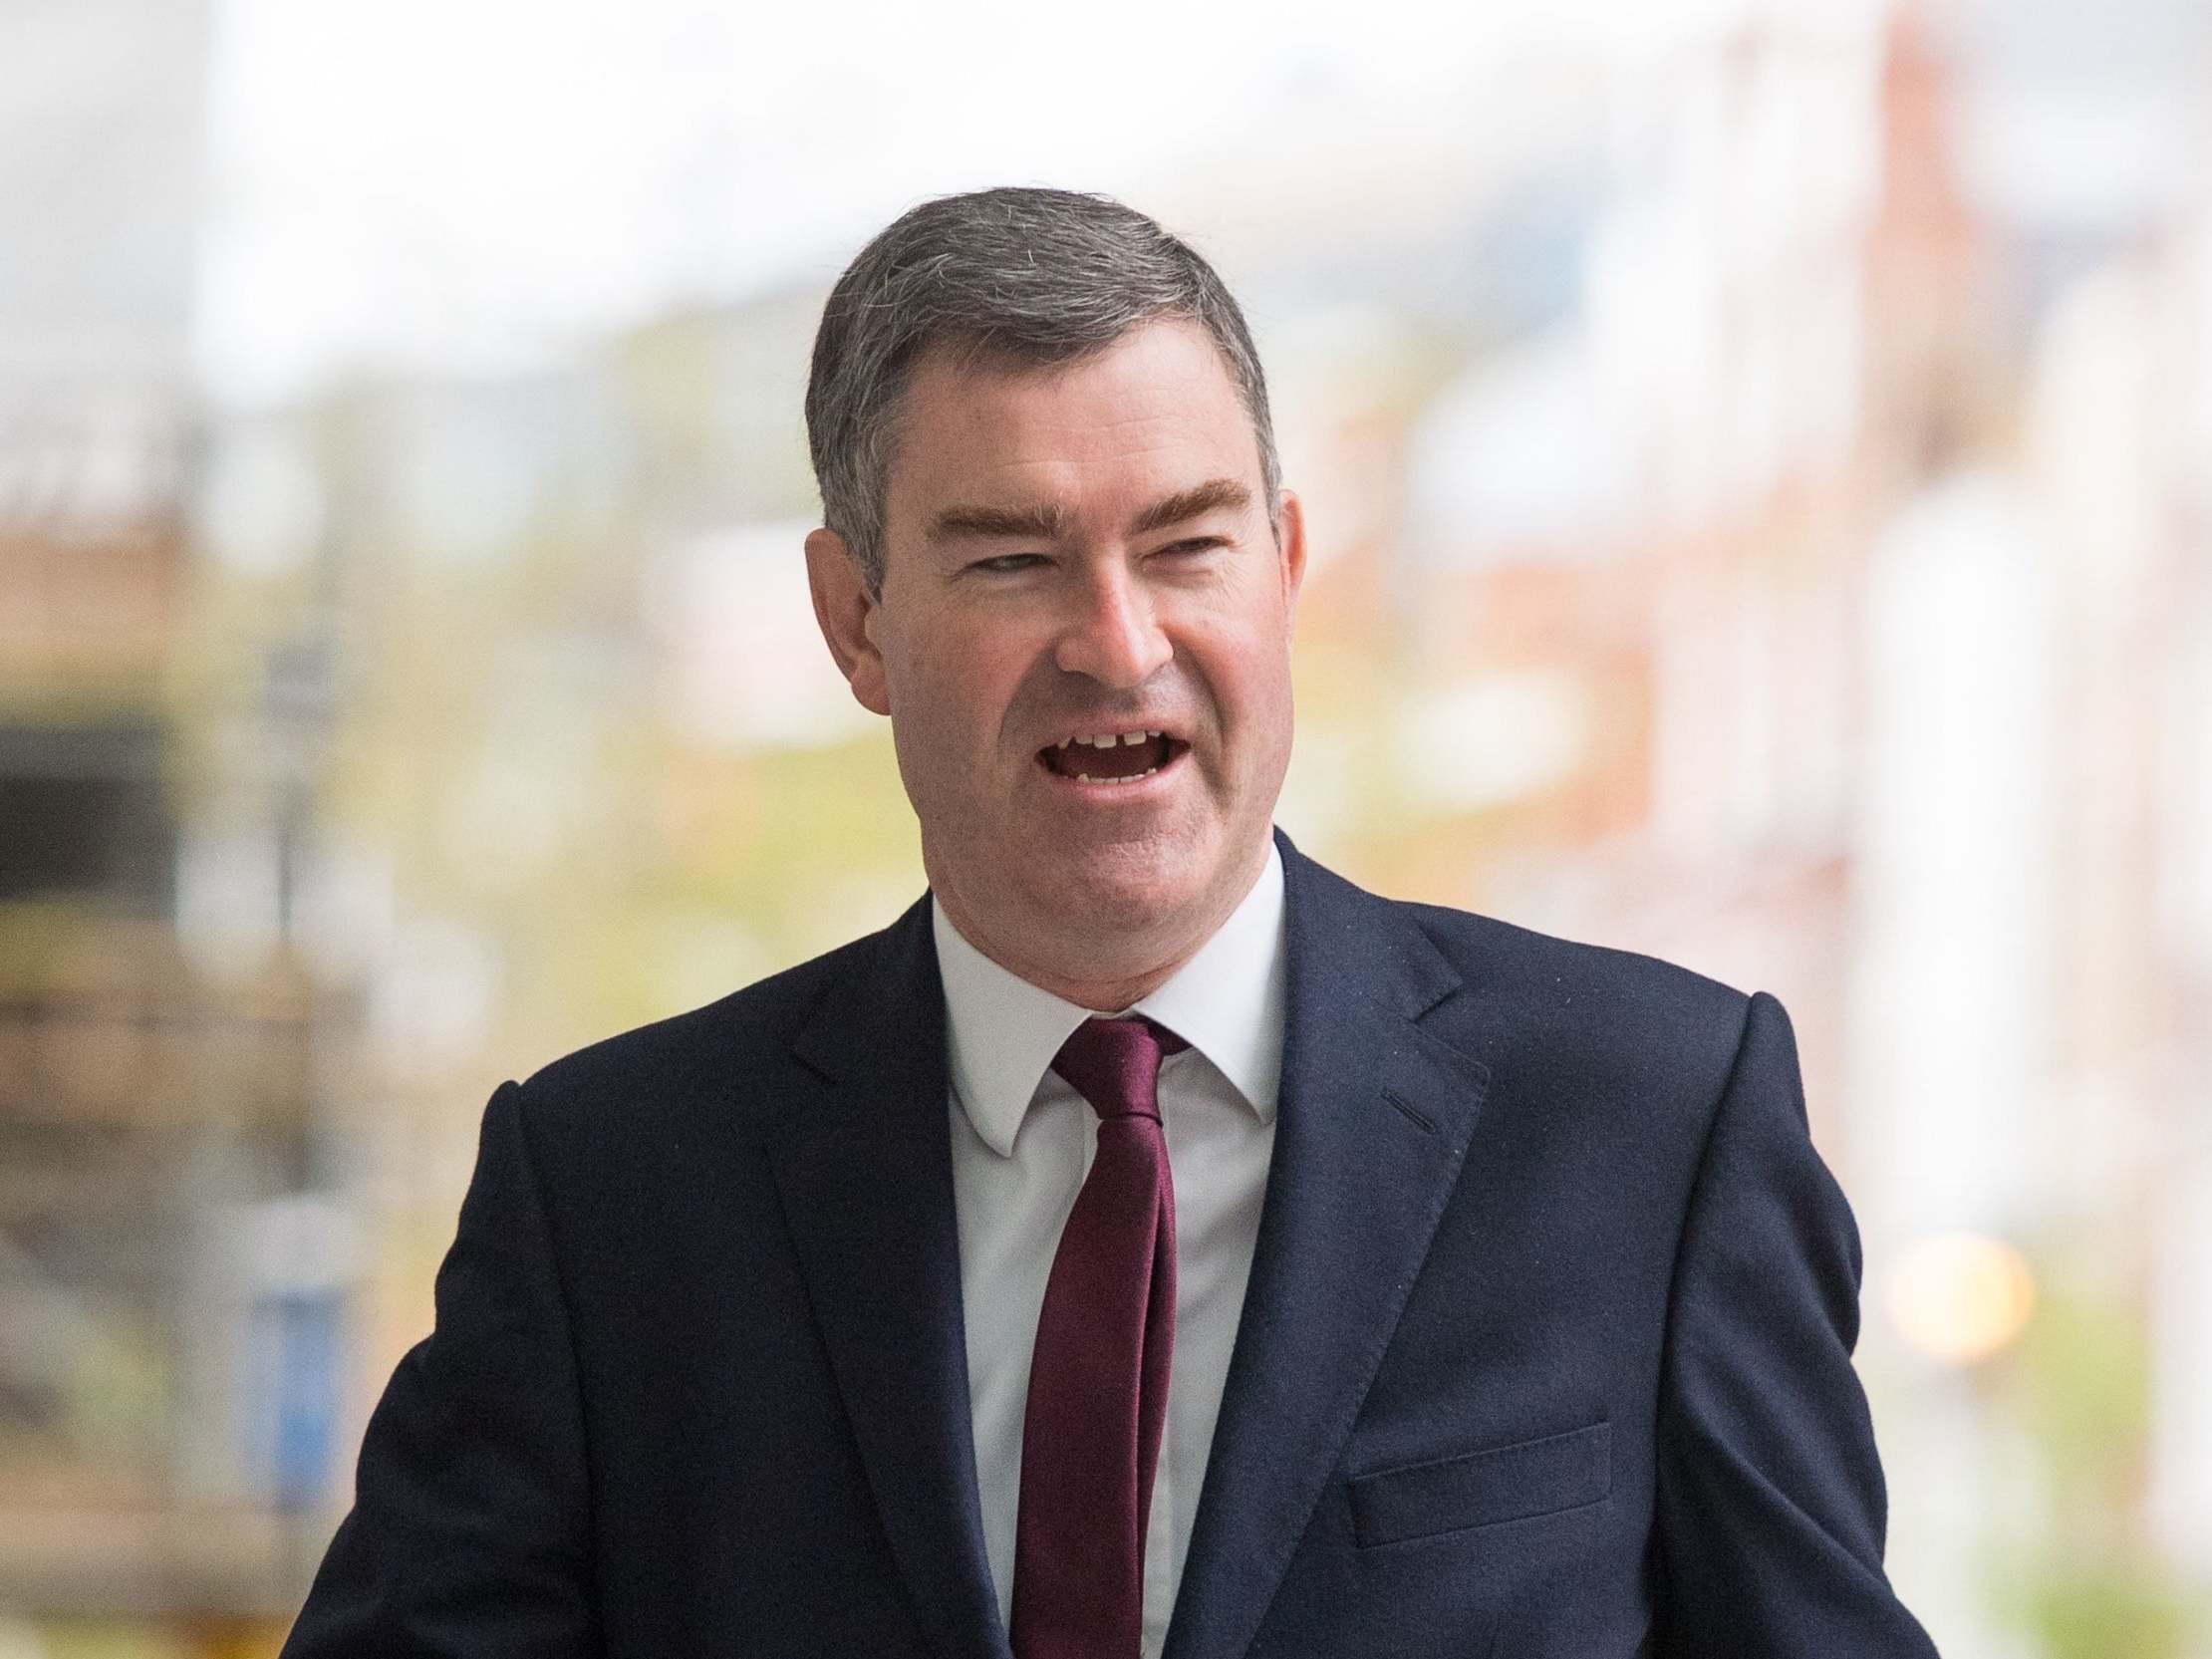 """David Gauke, the justice secretary, will quit the Government on Wednesday if Boris Johnson becomes prime minister.Mr Gauke, who has served in Theresa May's cabinet since she took office in June 2016, said he would not be able to serve under the former foreign secretary if he pursues a no-deal Brexit.As the Tory leadership contest enters its final 48 hours, the prominent no-deal critic told the Sunday Times that crashing out of the European Union would lead to national """"humiliation"""".And Mr Gauke said: """"Given that I've been in the Cabinet since Theresa May came to power, I think the appropriate thing is for me to resign to her.""""The paper also reported that up to six Tory MPs are considering defecting to the Liberal Democrats should Mr Johnson beat his rival Jeremy Hunt and enter Number 10 – leaving him with no majority in the Commons.The ballot for the Tory leadership race will close on Monday, with the result announced the following day.Mr Johnson, who is widely predicted to win the contest, has reportedly been secretly wooed by European politicians and officials in a bid to thrash out a new Brexit plan to avoid a no-deal exit, the Sunday Times reported.It said figures from Ireland, France, Germany, Belgium and the Netherlands had established contact with the frontrunner's team and signalled their intention to do a deal.Amber Rudd, the work and pensions secretary and former Remainer, urged her Tory colleagues to back whoever wins the contest.Writing in the Sunday Telegraph, she said: """"Just as the Conservative Party came together after that EU referendum, it must now come together again no matter who wins.""""I know many of my colleagues have strong feelings but a new prime minister will get a new hearing in the European Union and I hope everyone can unite behind that.""""If we don't, the alternative could be Corbyn for Christmas.""""Her comments came after Philip Hammond, the chancellor, fired a warning shot to Mr Johnson, saying he would do """"everything in my power"""" to block """